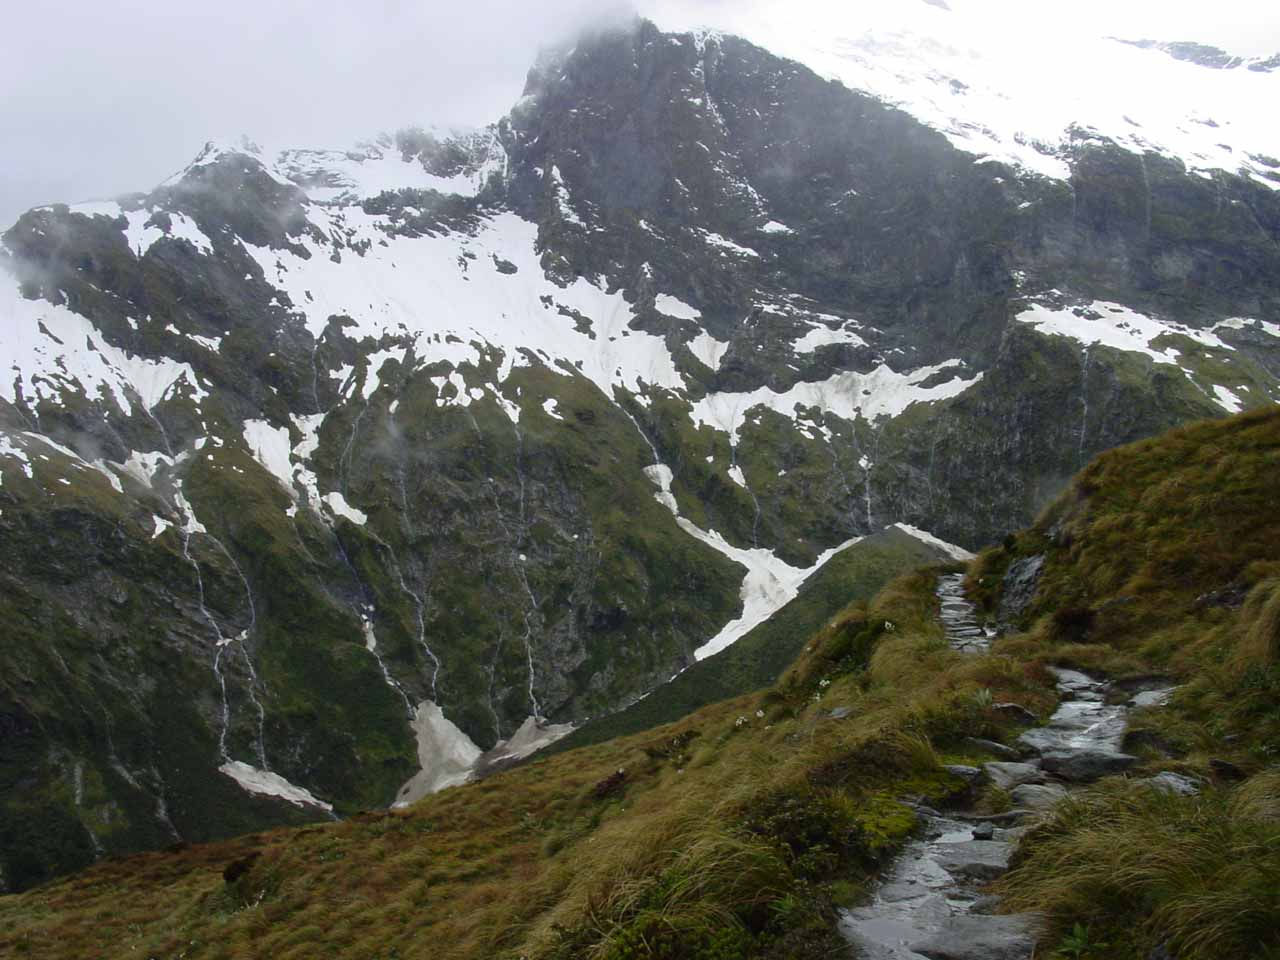 Descending into the Arthur Valley side of the Milford Track with many waterfalls and some snow coming down